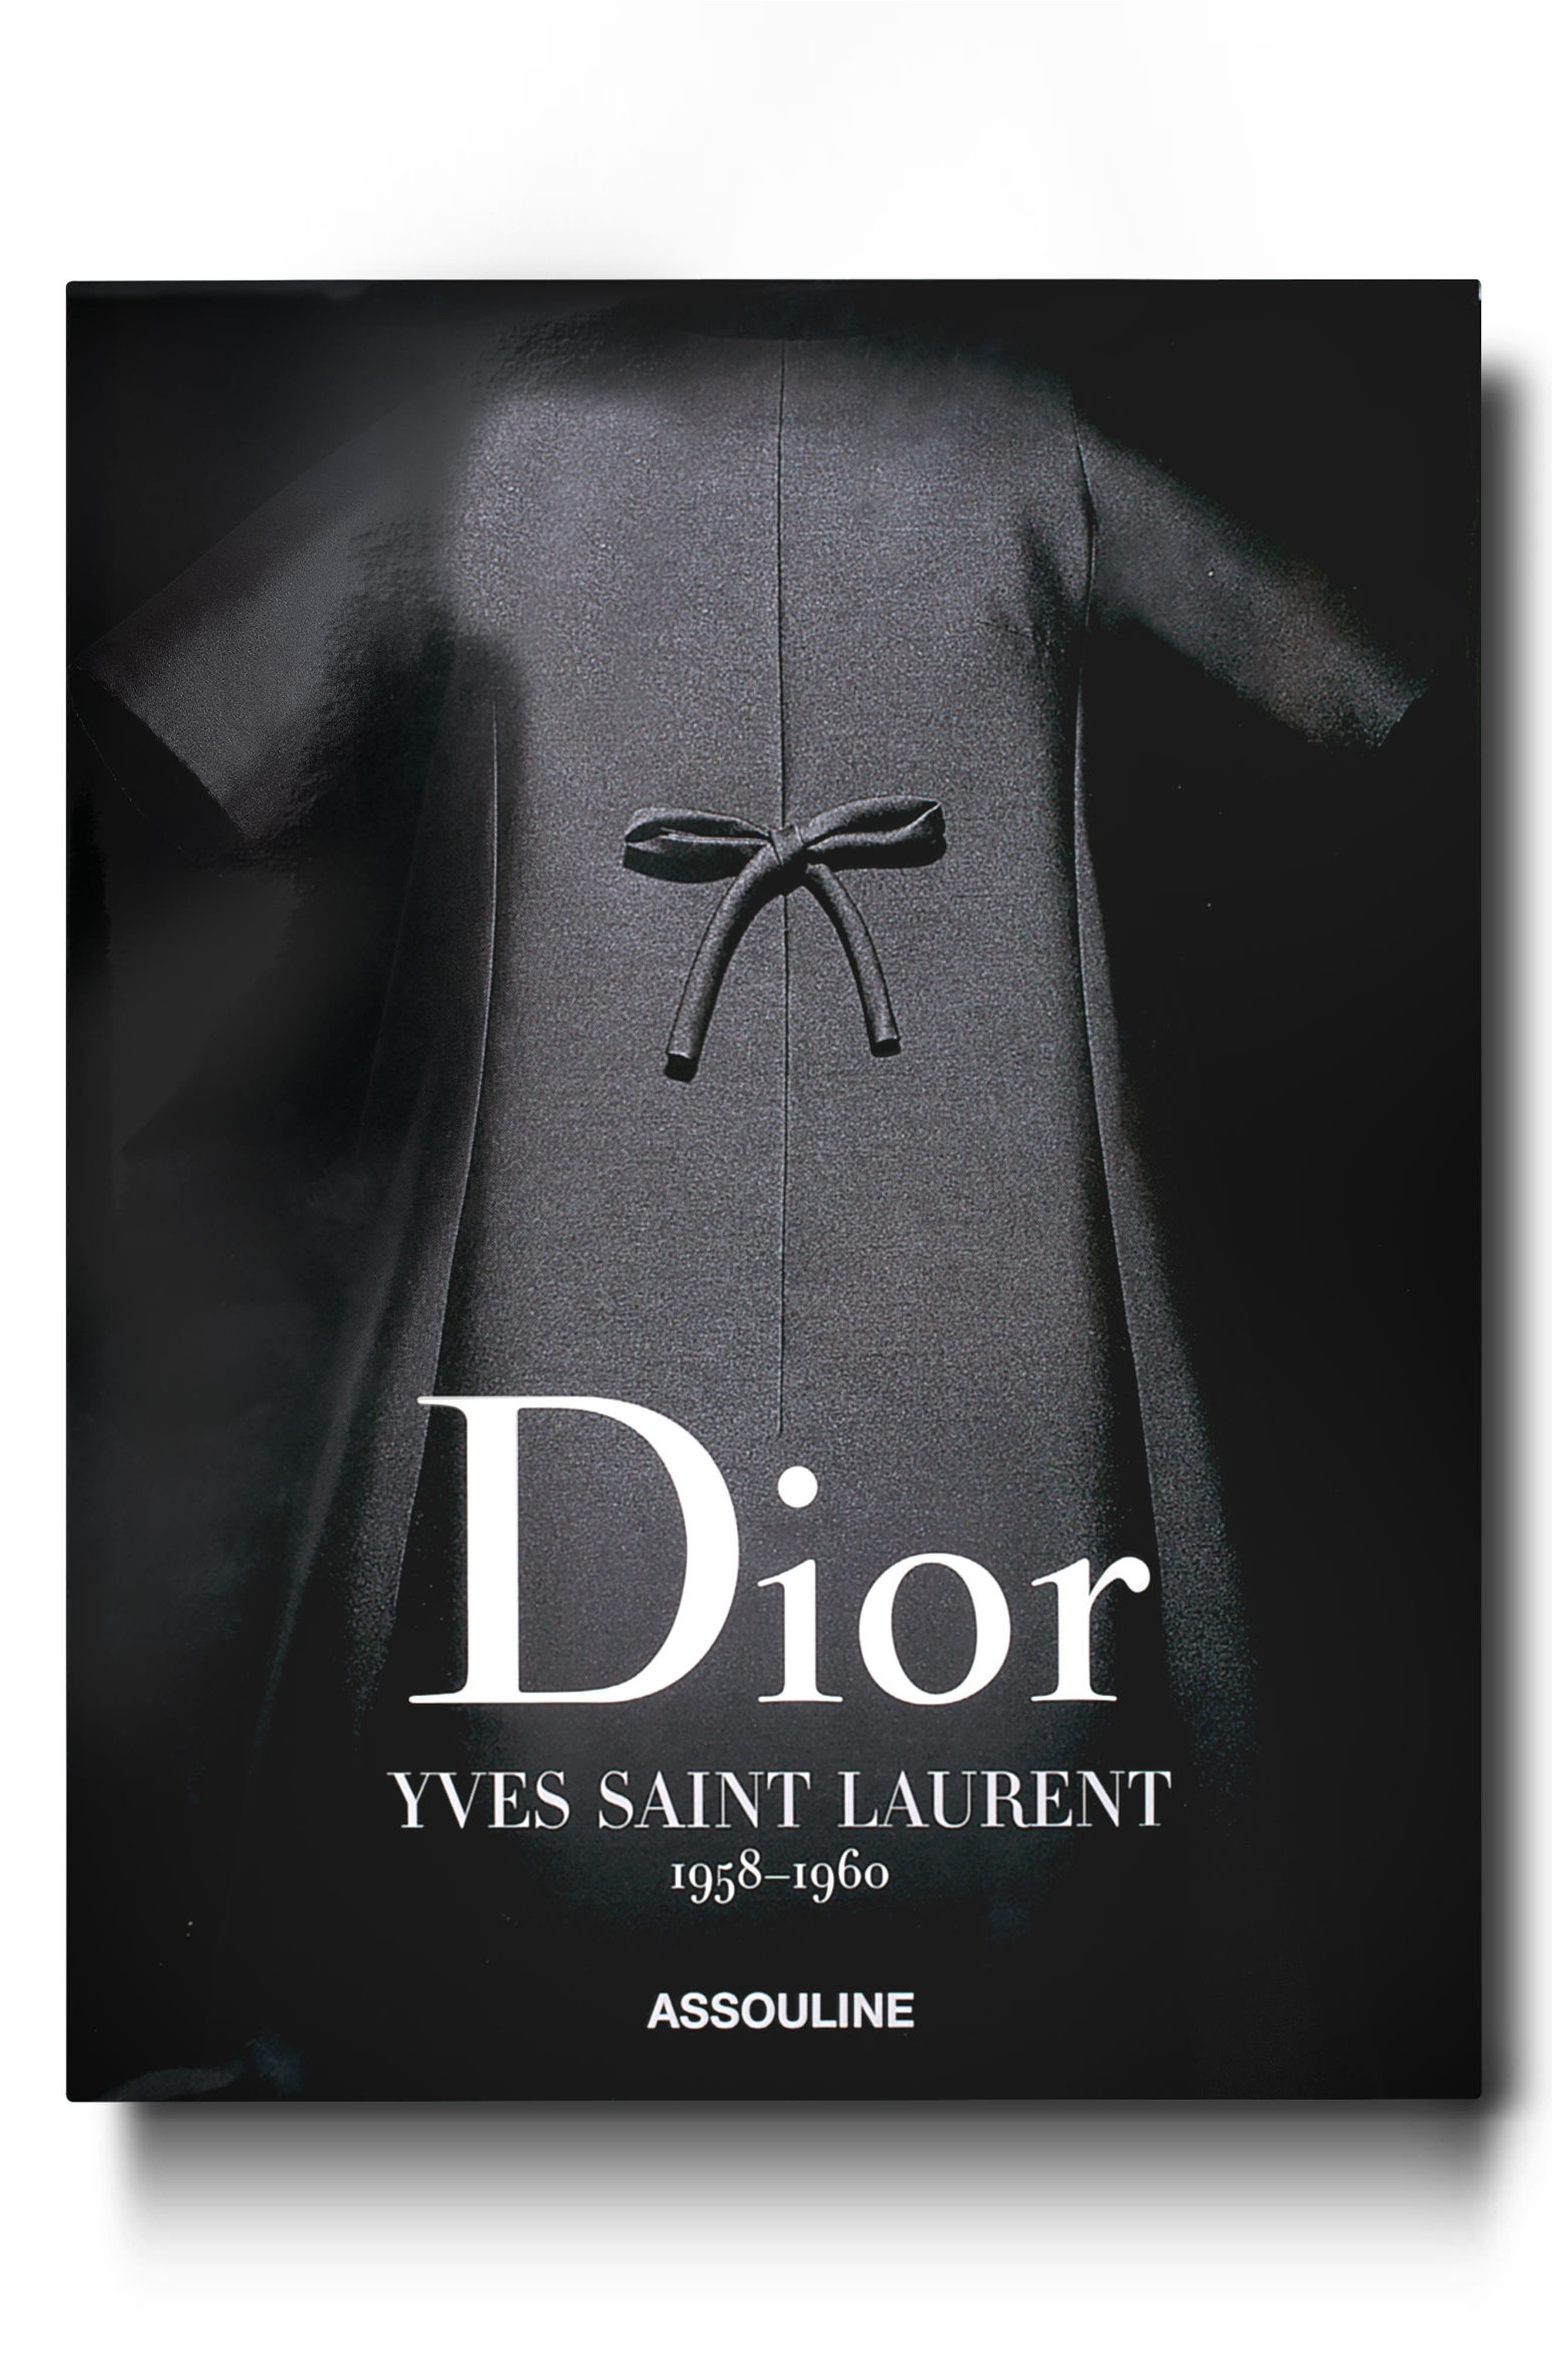 Main Image - 'Dior by Yves Saint Laurent' Book